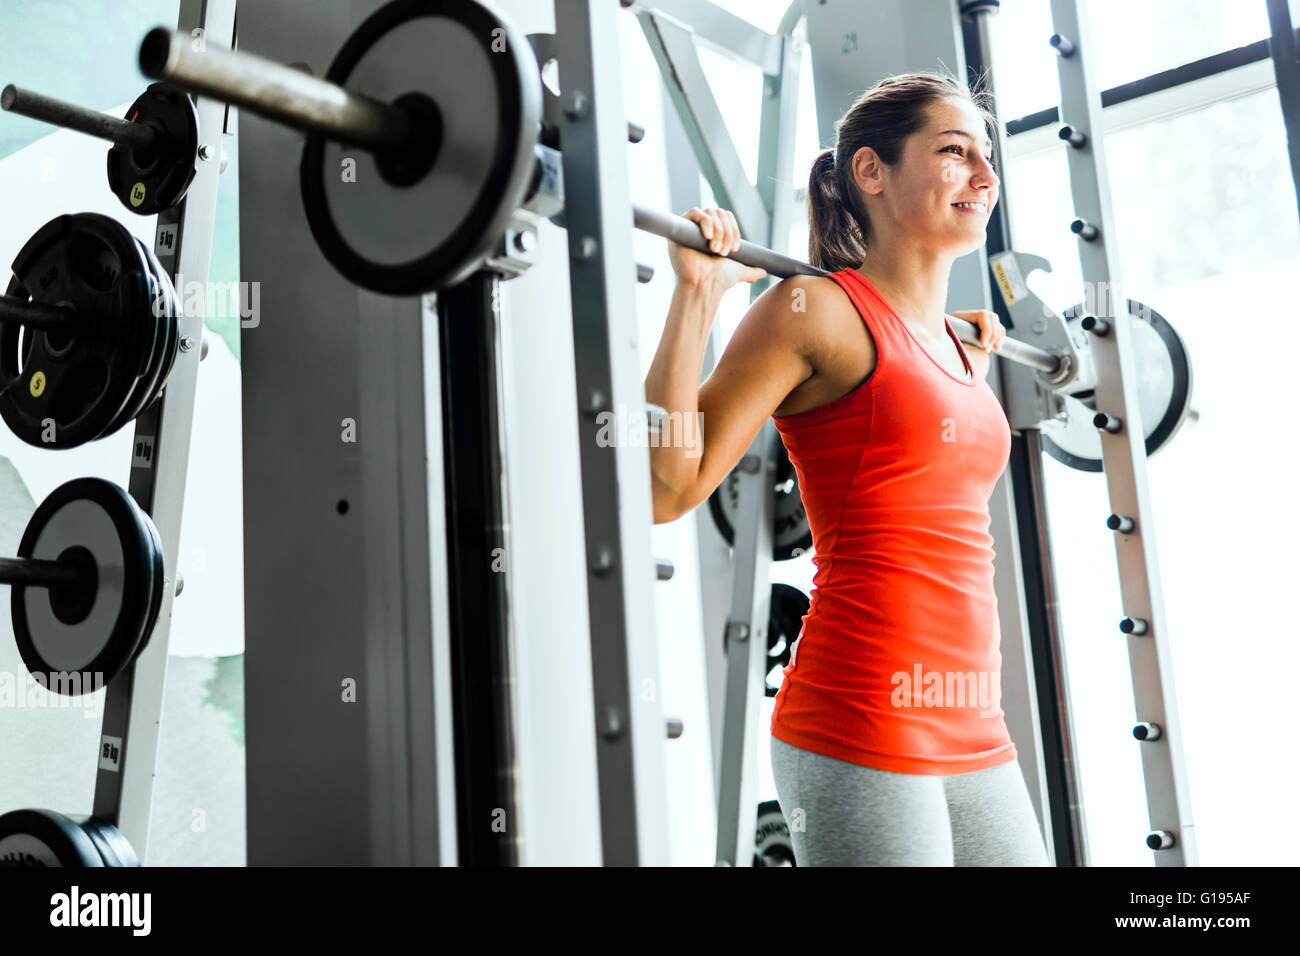 Focused young beautiful woman lifting weights in a gym - Stock Image